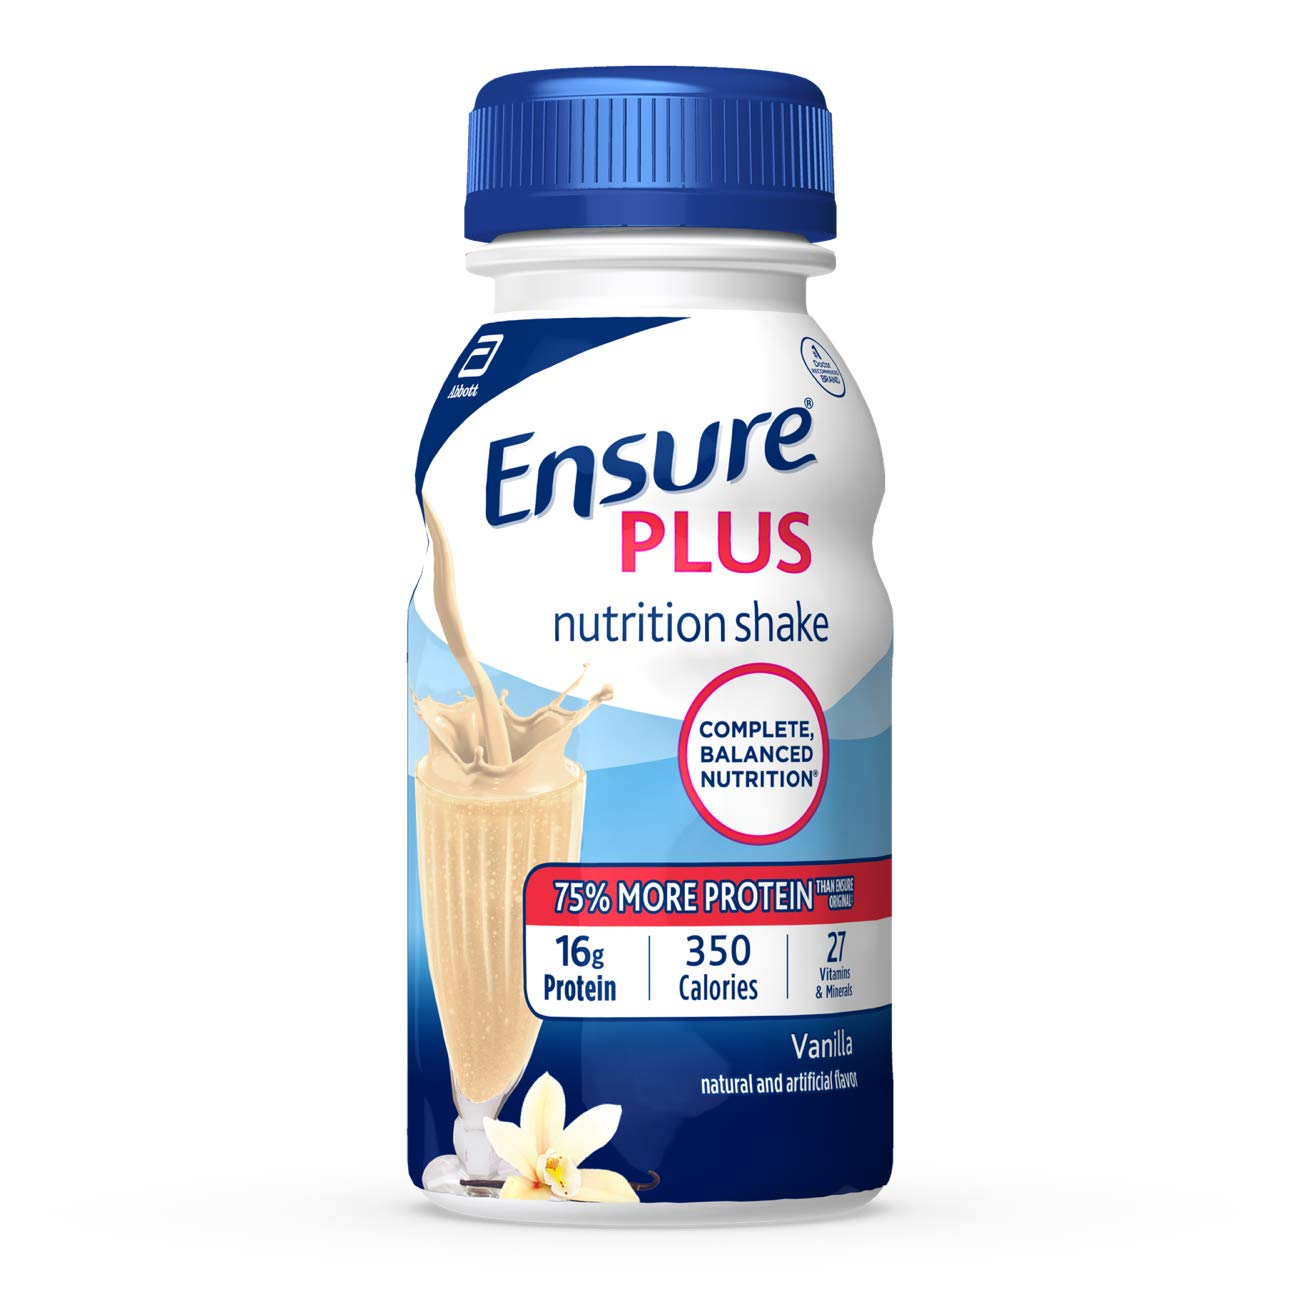 Ensure Plus Nutrition Shake With 16 Grams of High-Quality Protein, Meal Replacement Shakes, Vanilla, 8 fl oz, 6 Count